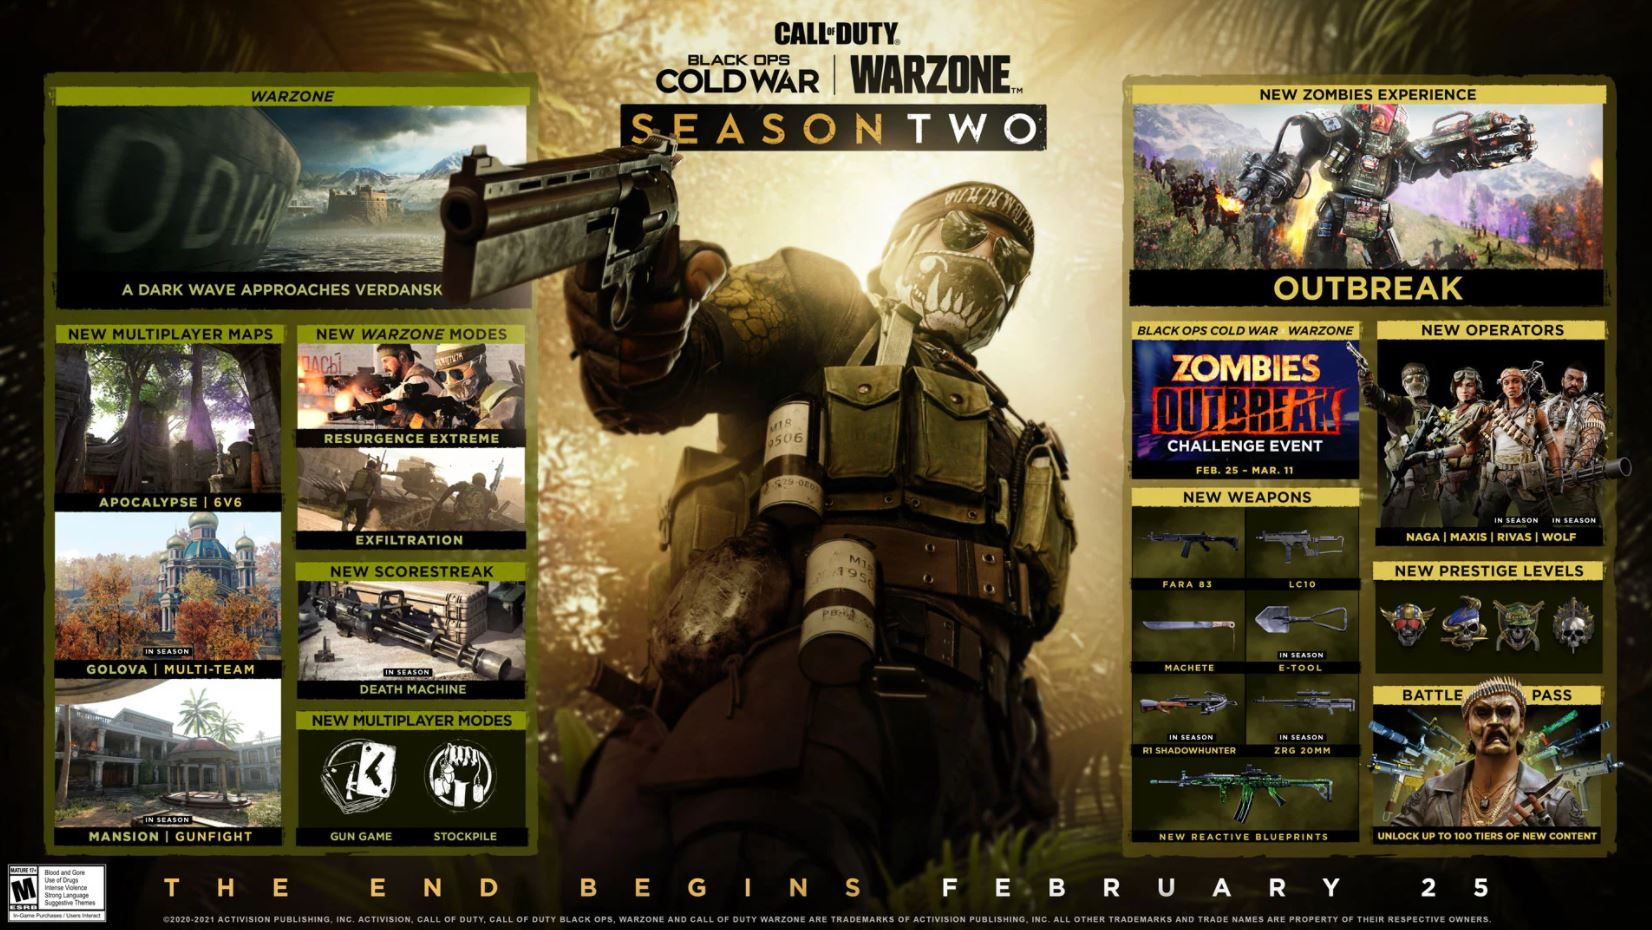 call-of-duty-black-ops-cold-war-warzone-season-two-detailed-with-roadmap-and-outbreak-open-world-zombies-mode-1